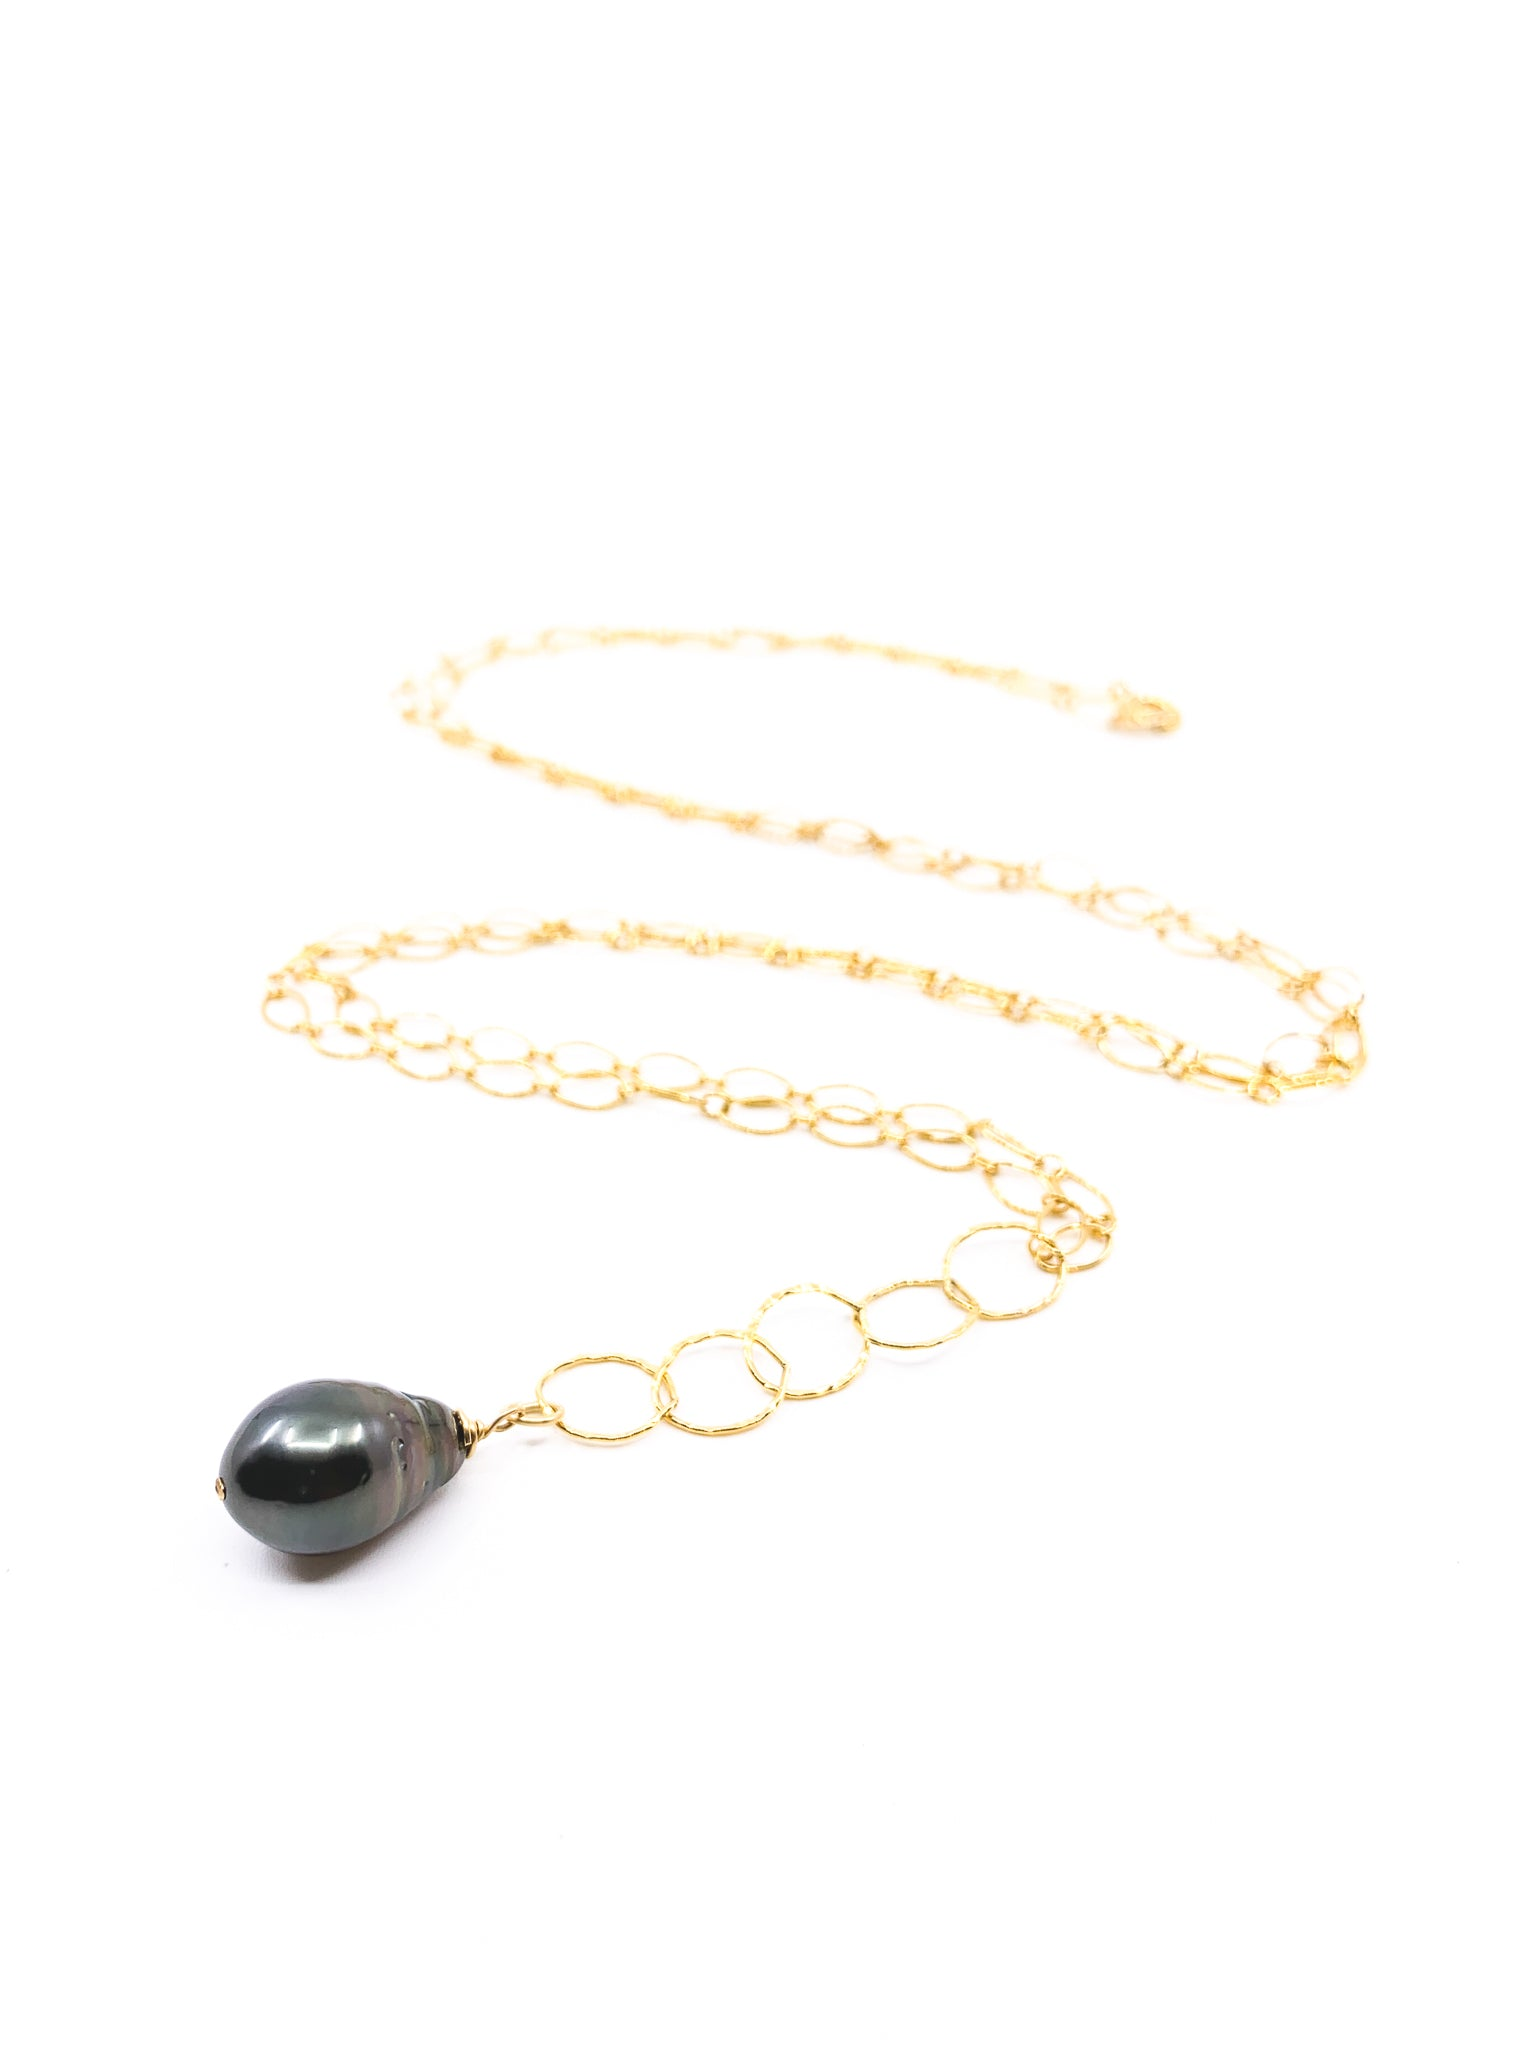 single tahitian pearl long necklace by eve black jewelry handmade in Hawaii